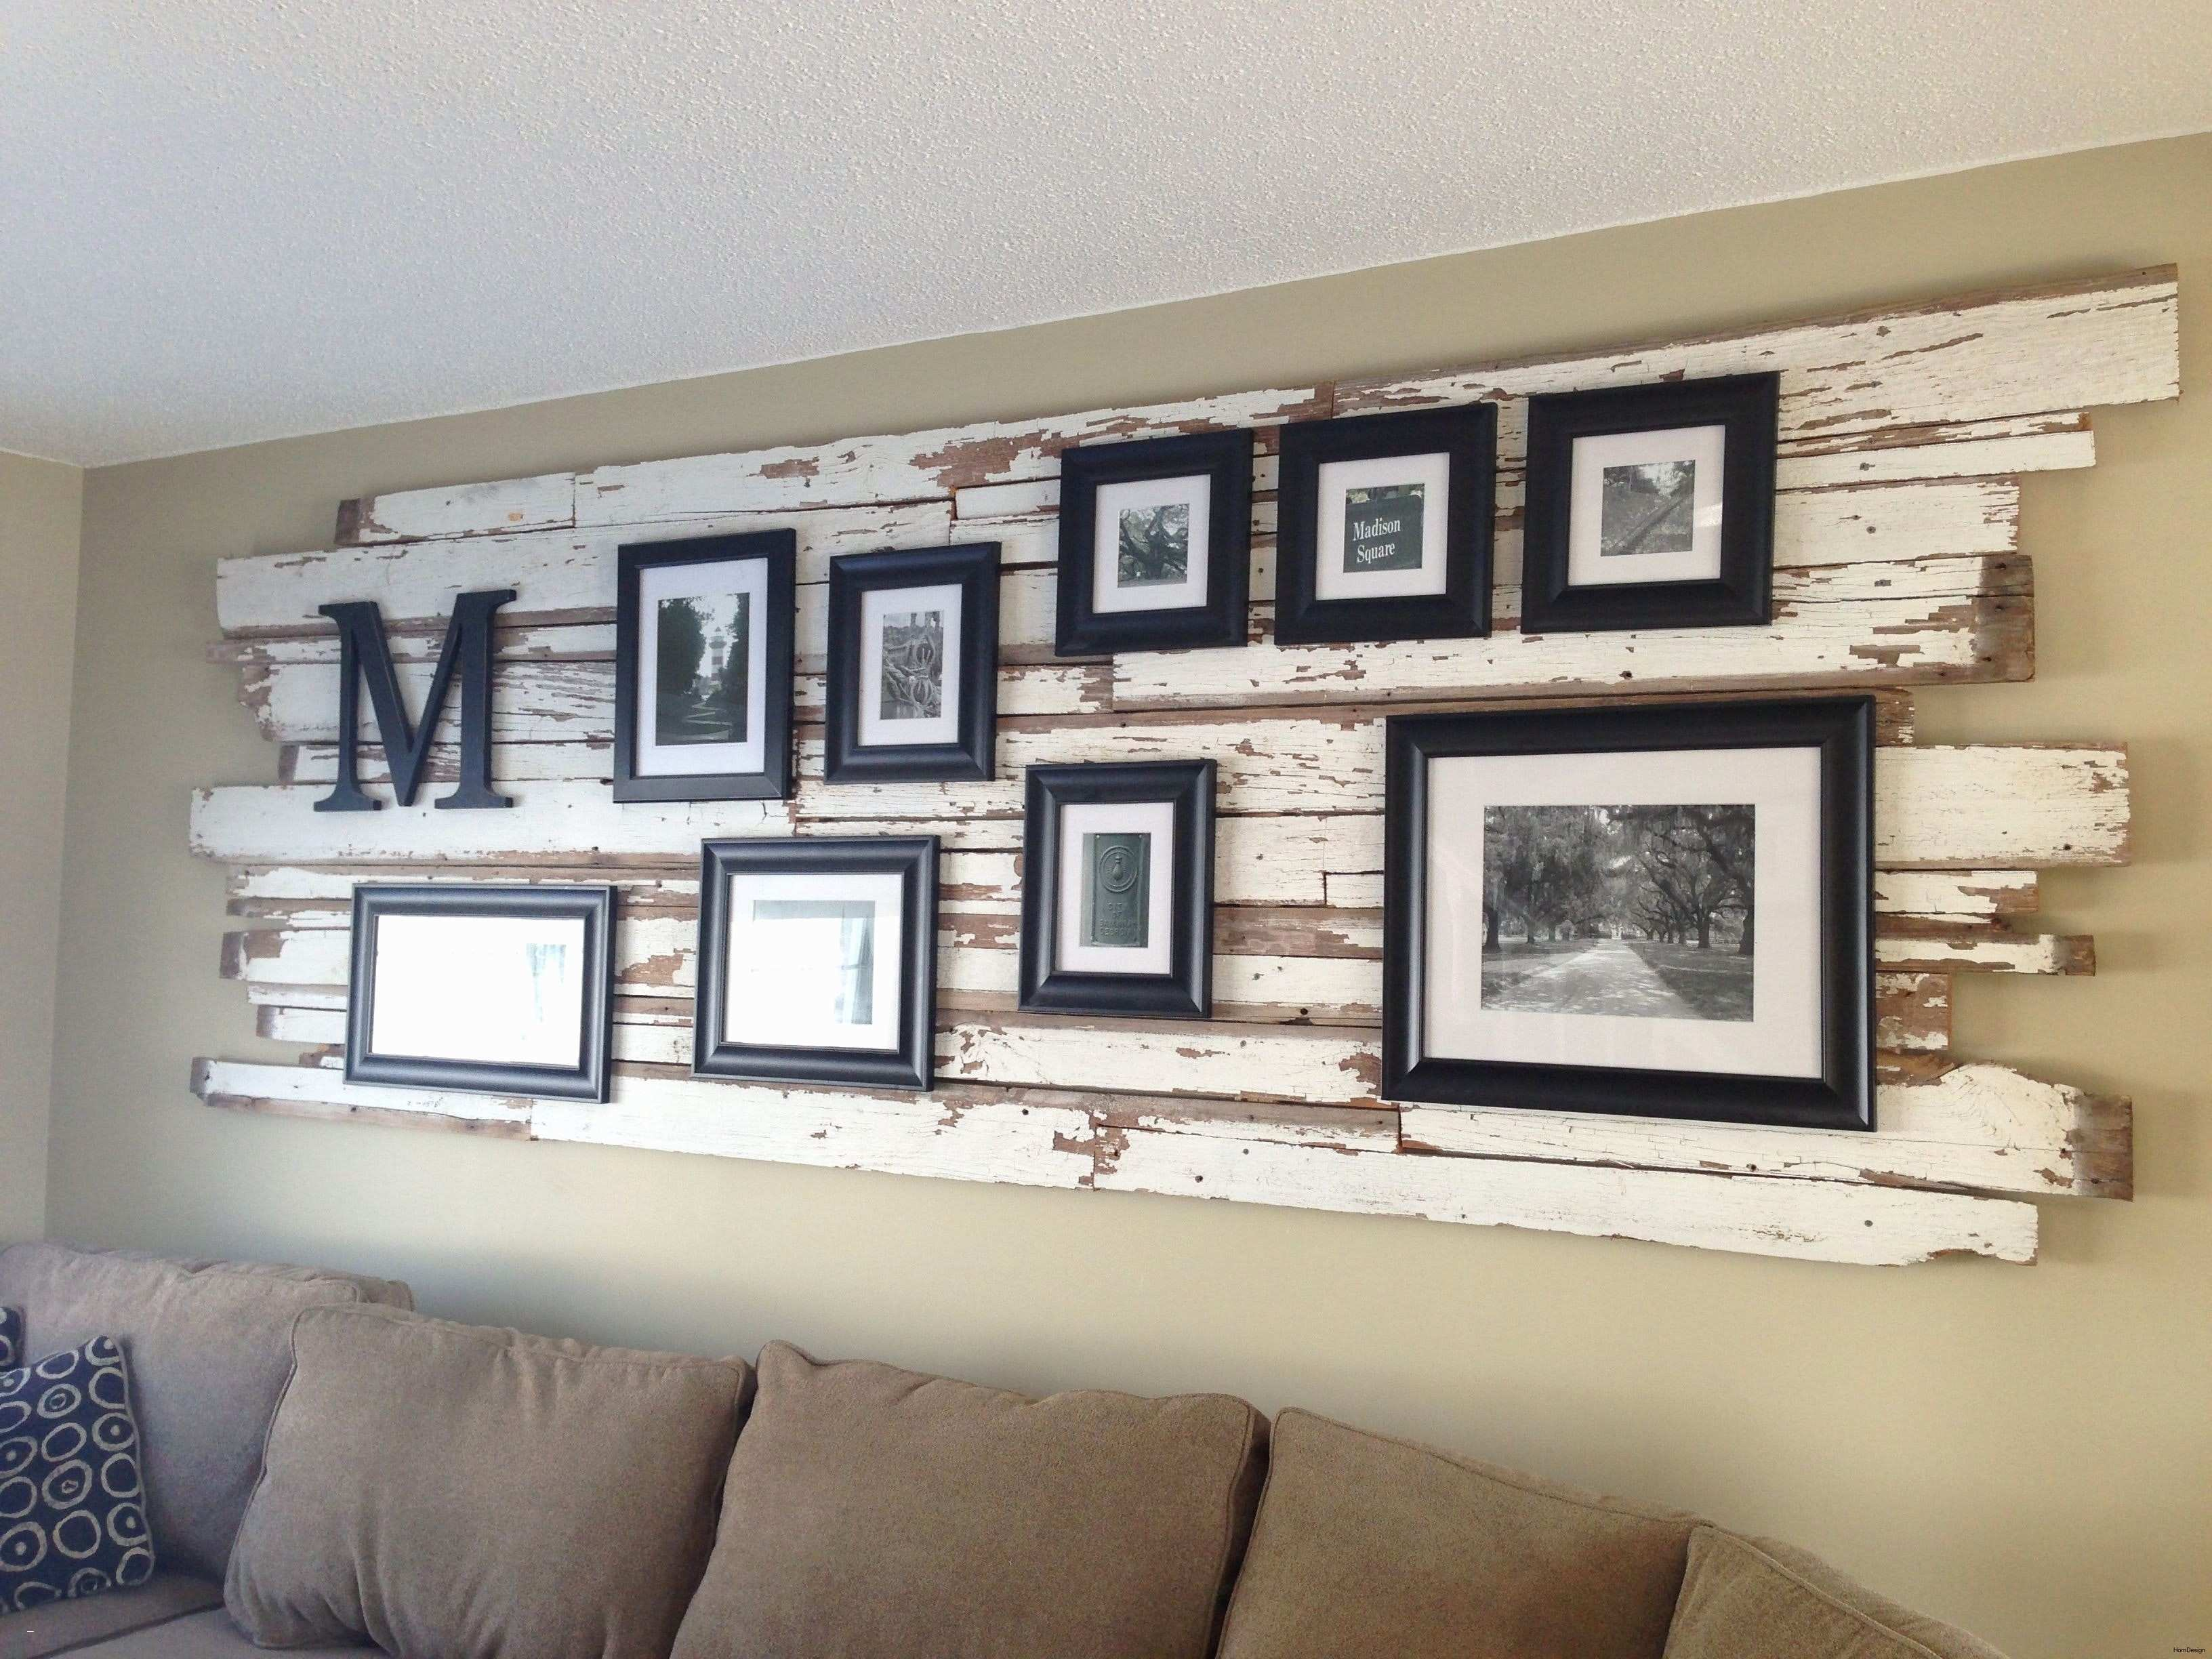 32 Luxury African American Wall Art and Decor